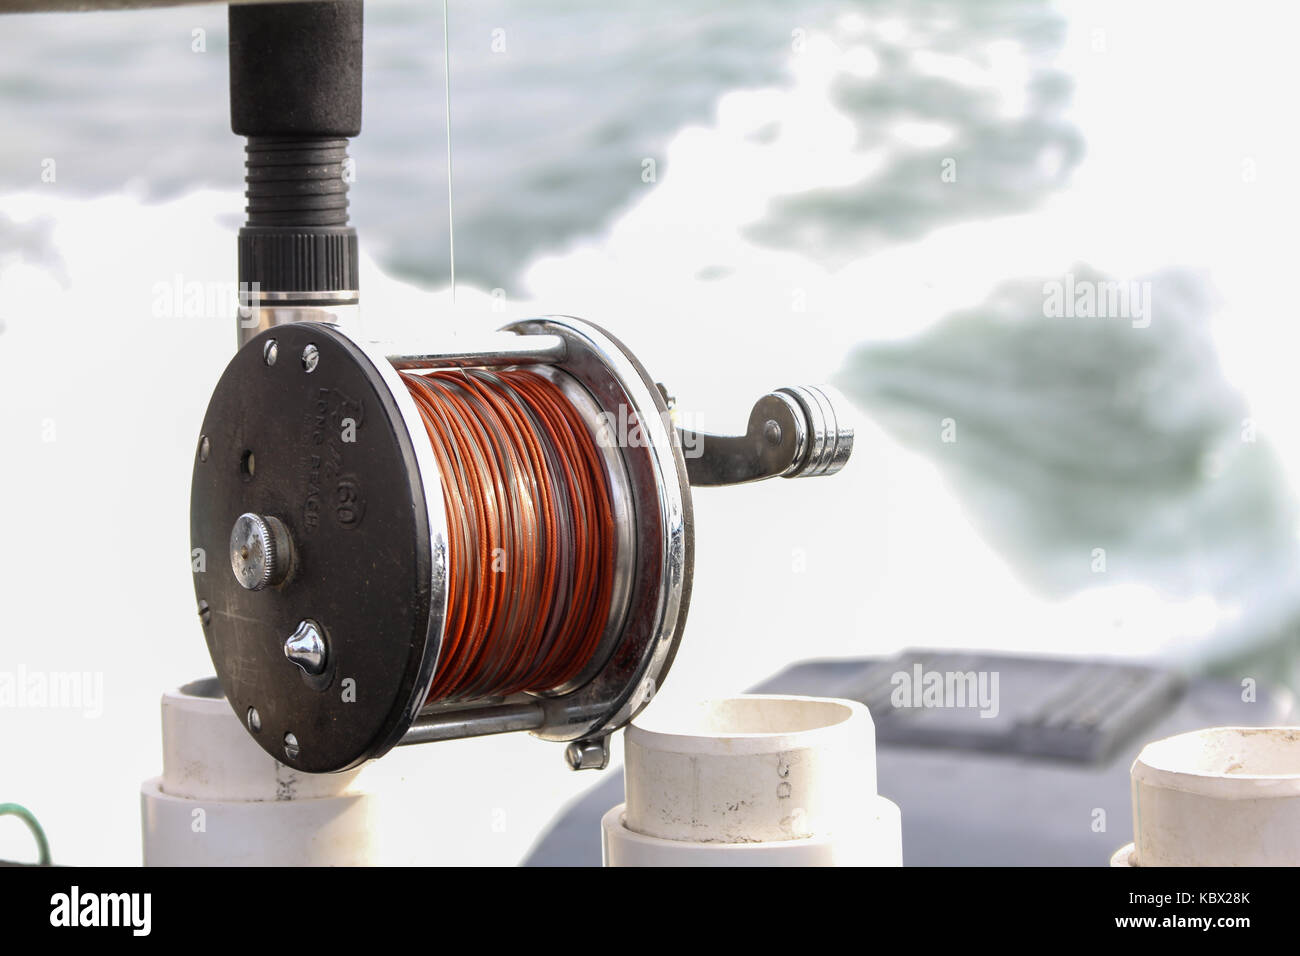 Close up of a lead core fishing reel in a rod holder on a boat that is moving through the water. - Stock Image